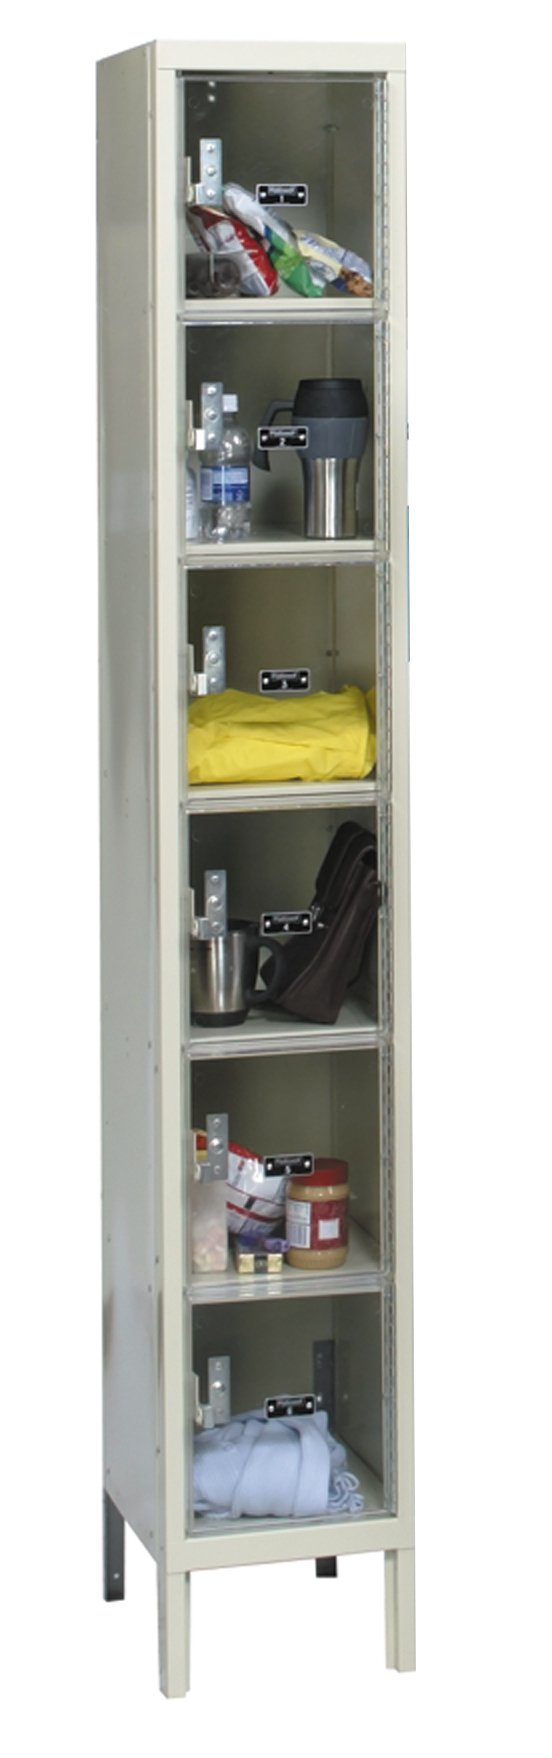 Hallowell USVP1258-6PT Safety-View Plus Locker, 12'' Width x 15'' Depth x 78'' Height, 6-Tier, 1-Wide, Knock-Down, 729 Parchment